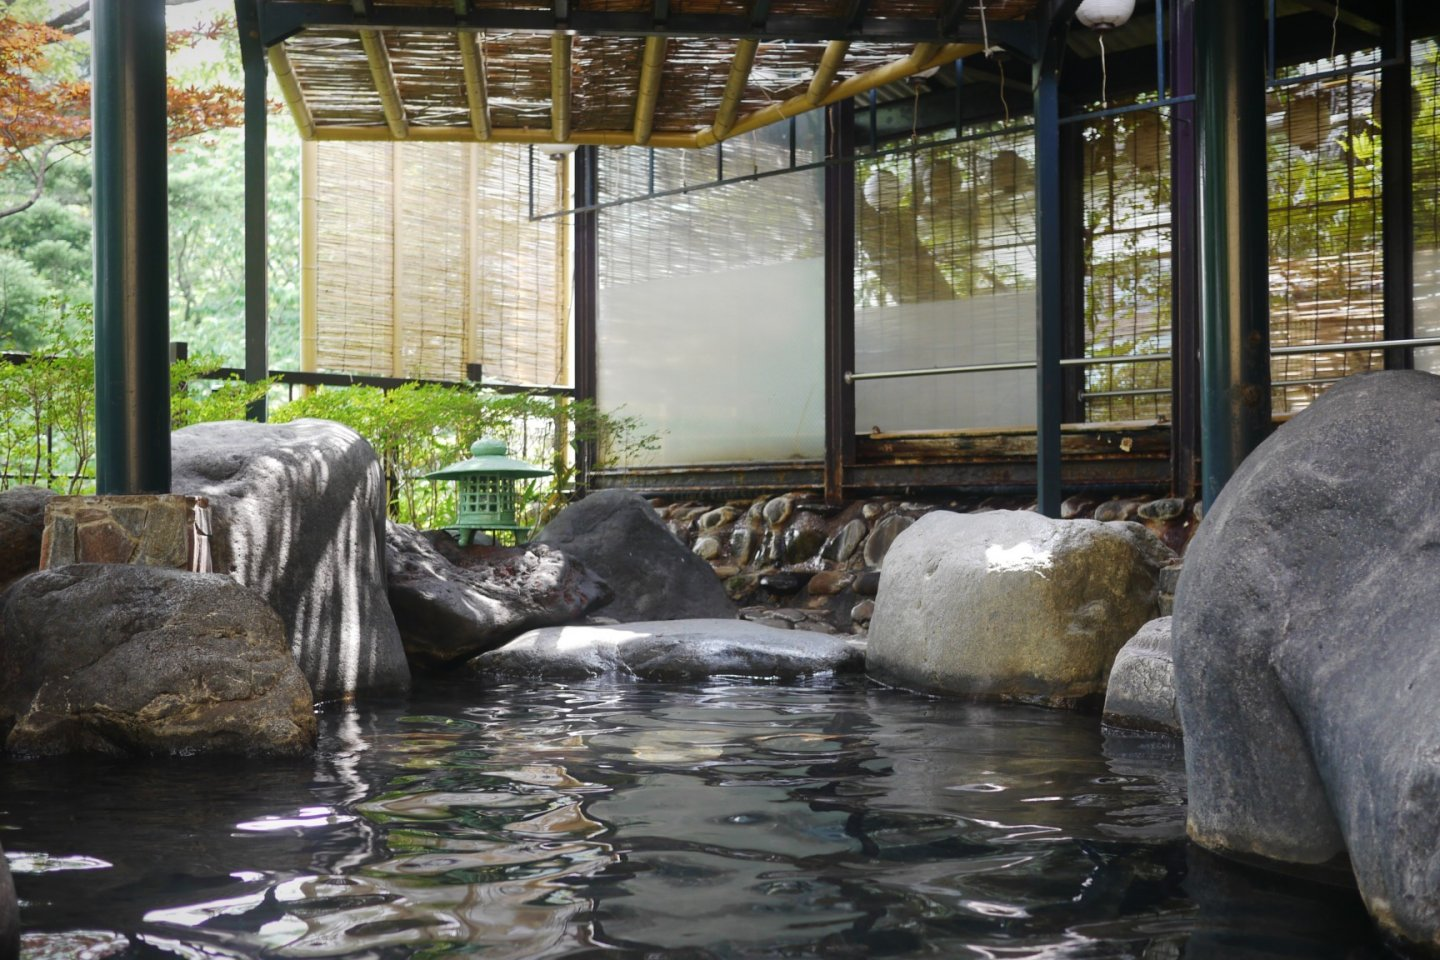 Outdoor onsen with a view of the river